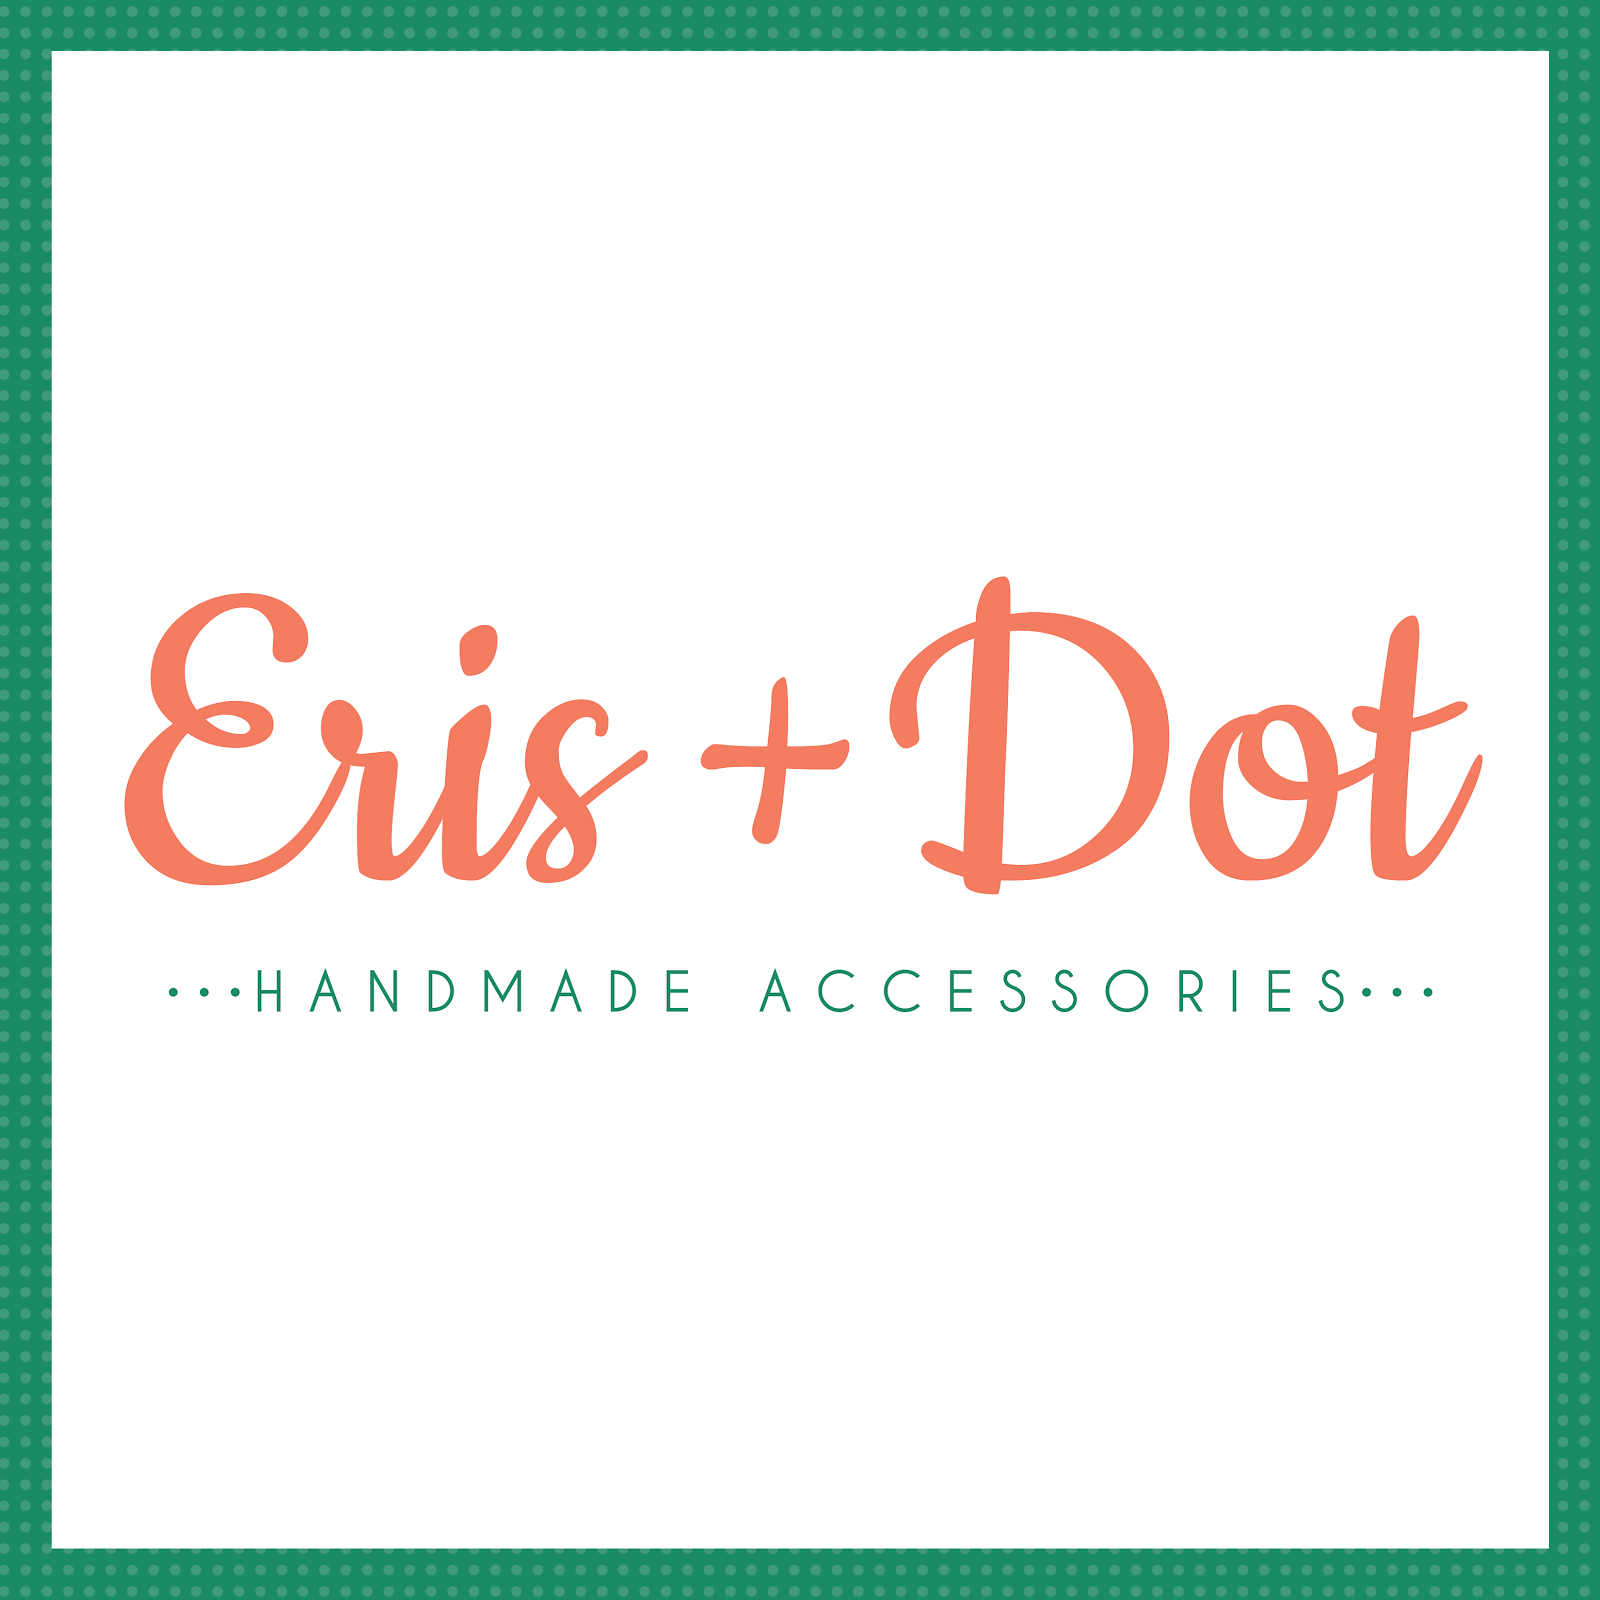 About Eris + Dot